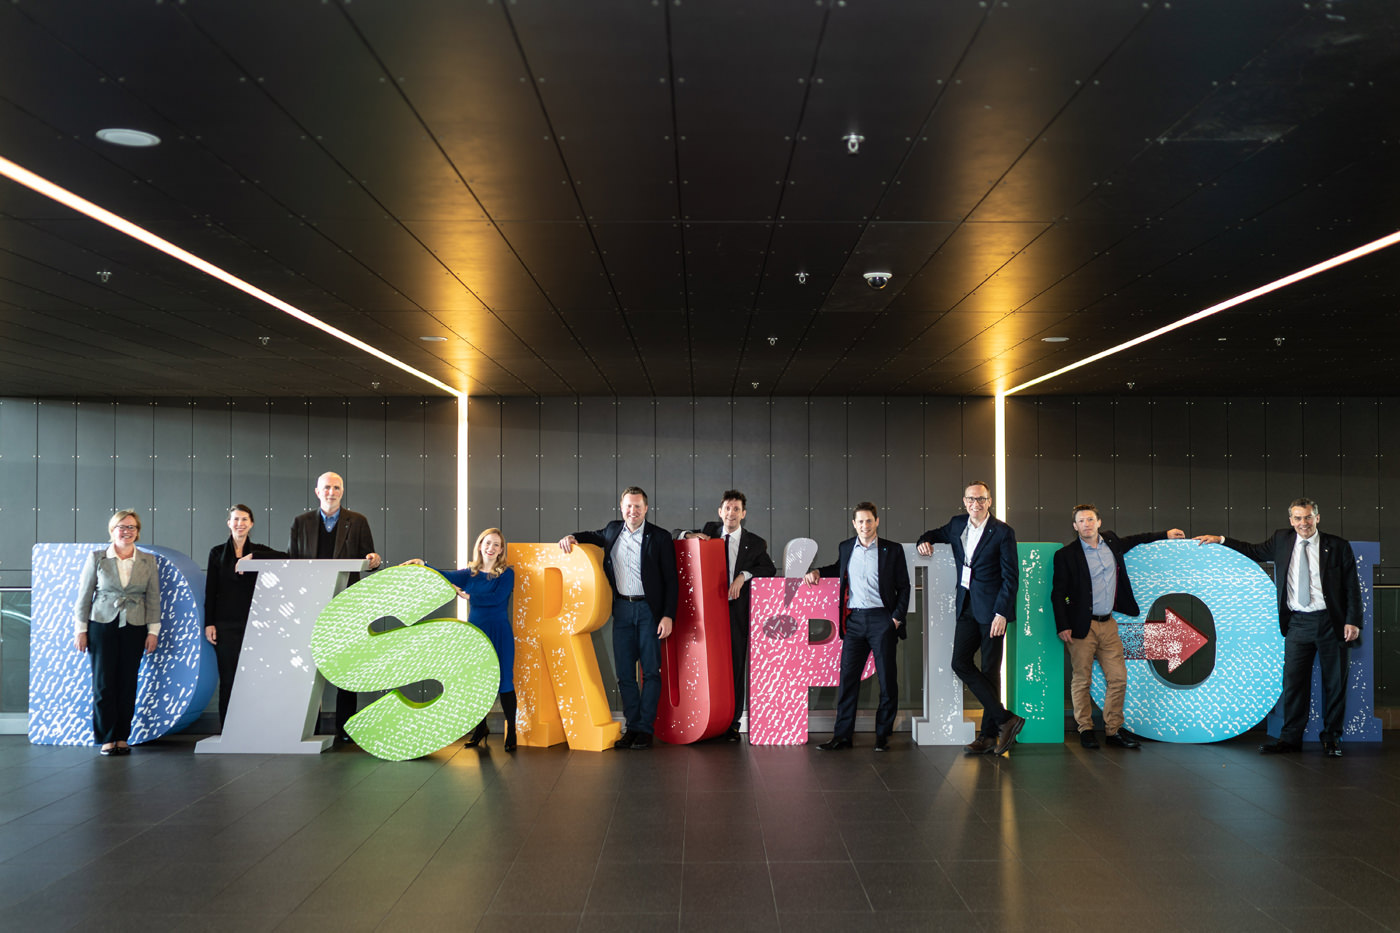 The CFA Society of the UK team at the 2019 Annual Conference surrounded by giant letters spelling Disruption